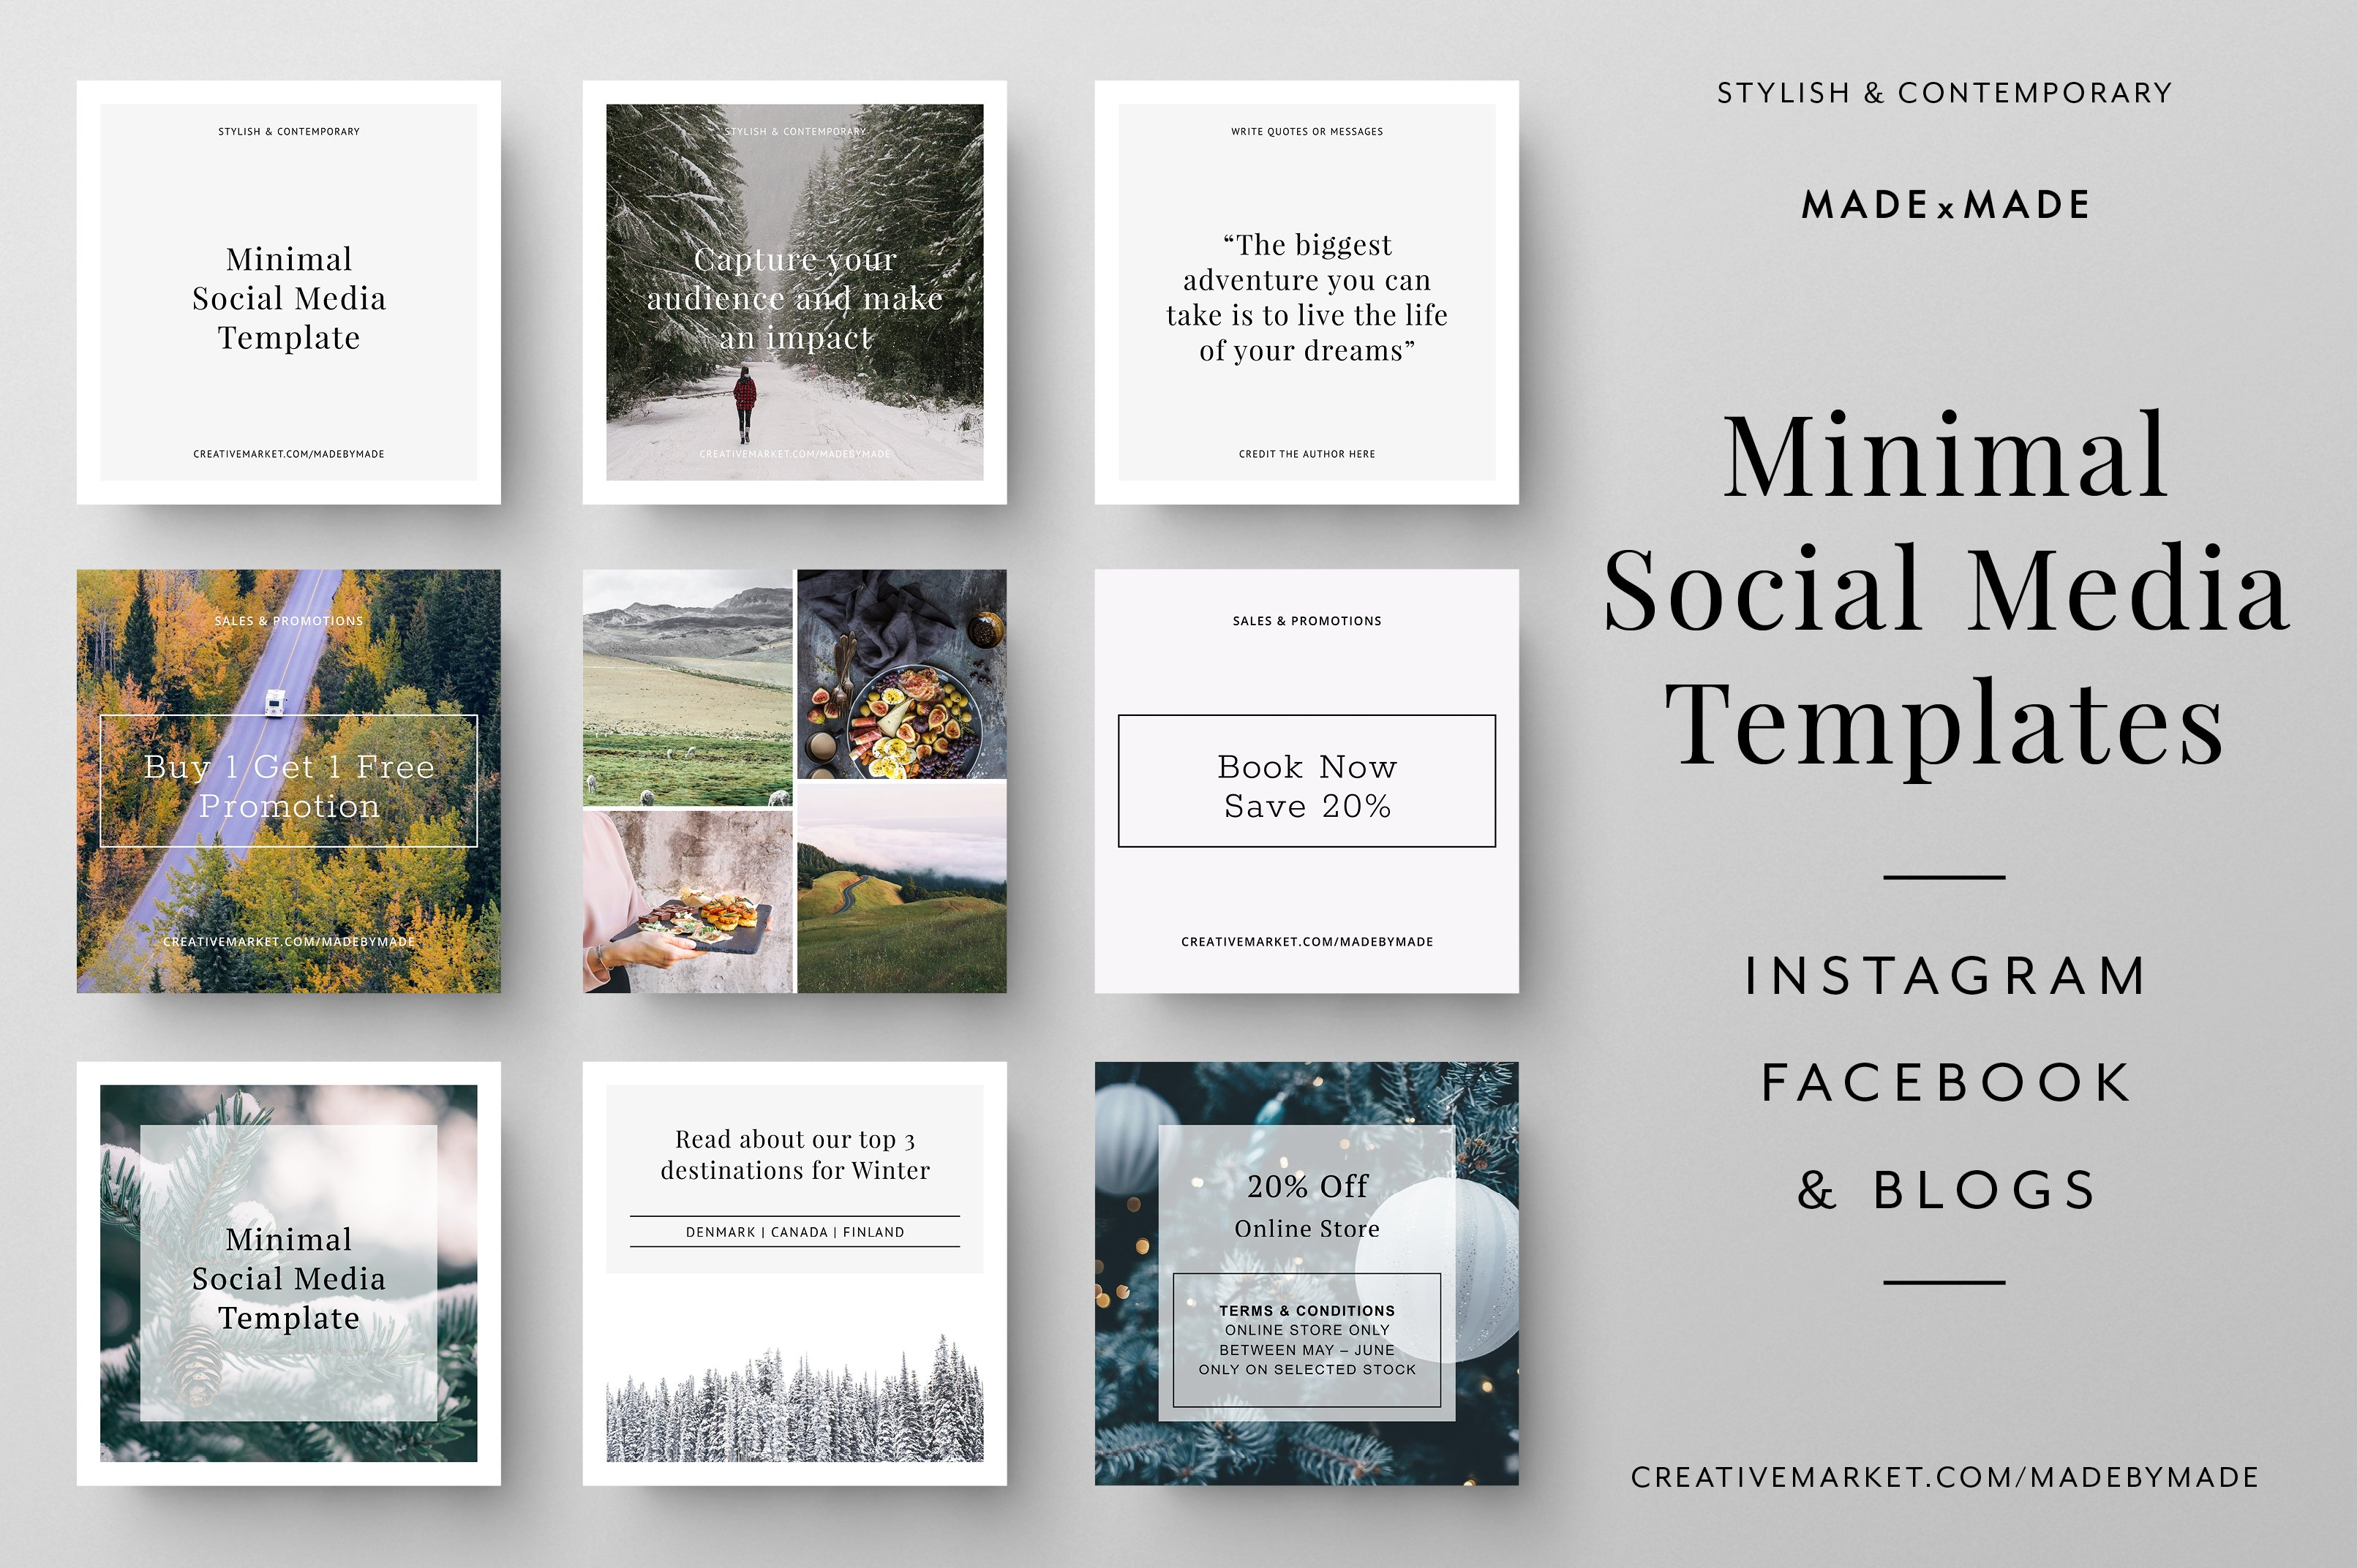 minimal social media templates social media templates creative market. Black Bedroom Furniture Sets. Home Design Ideas